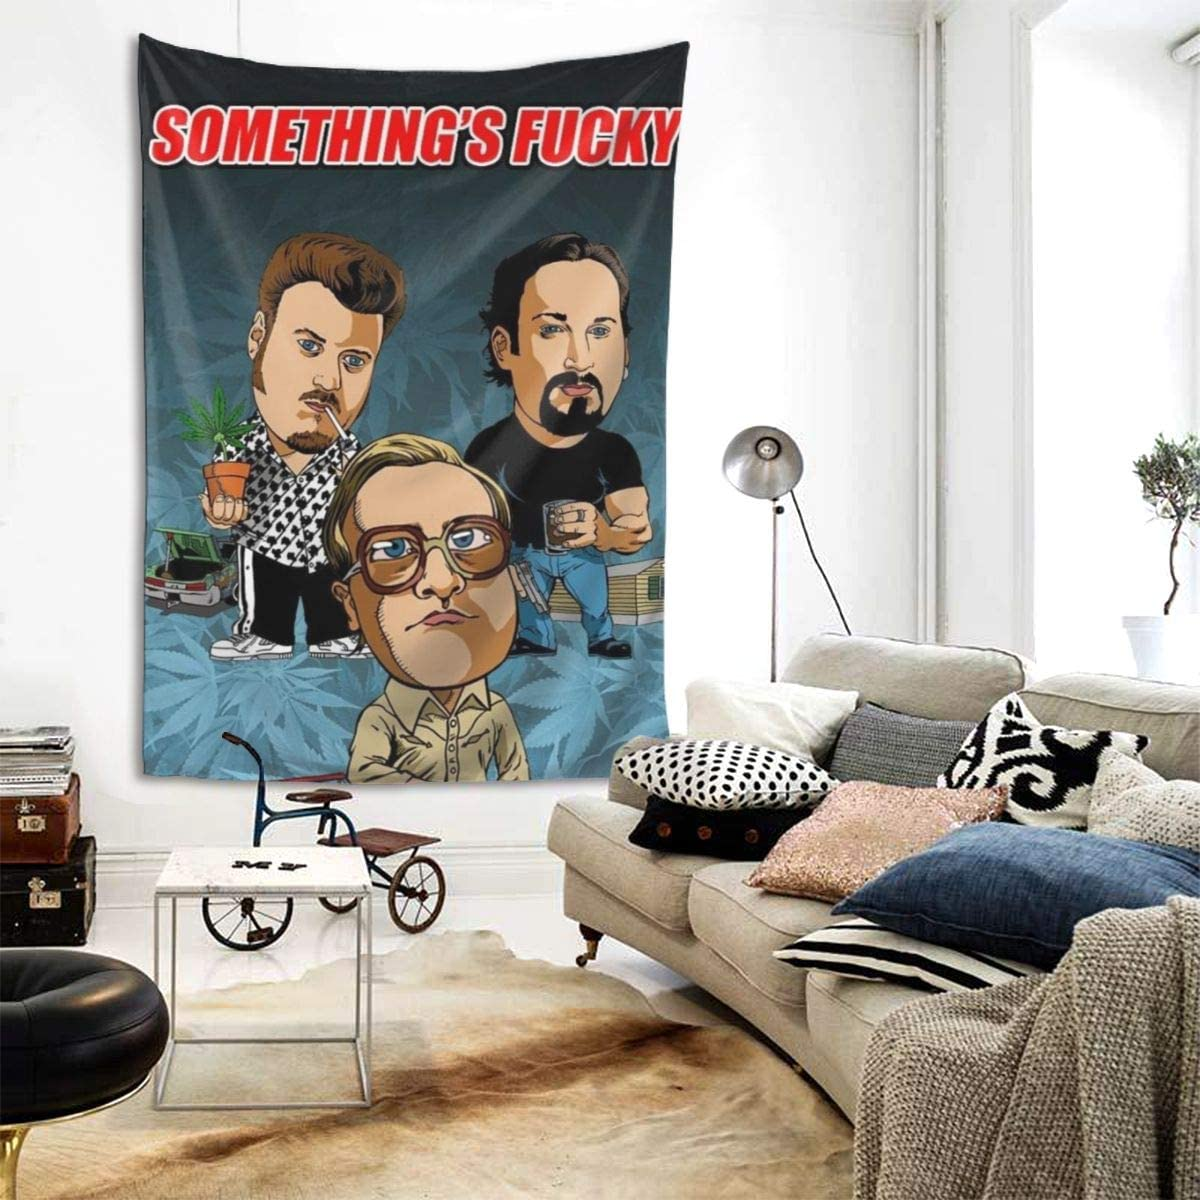 Trailer Park Boys Wall Hanging Tapestry,Beach Blanket Tapestry Dorm Decor for Home